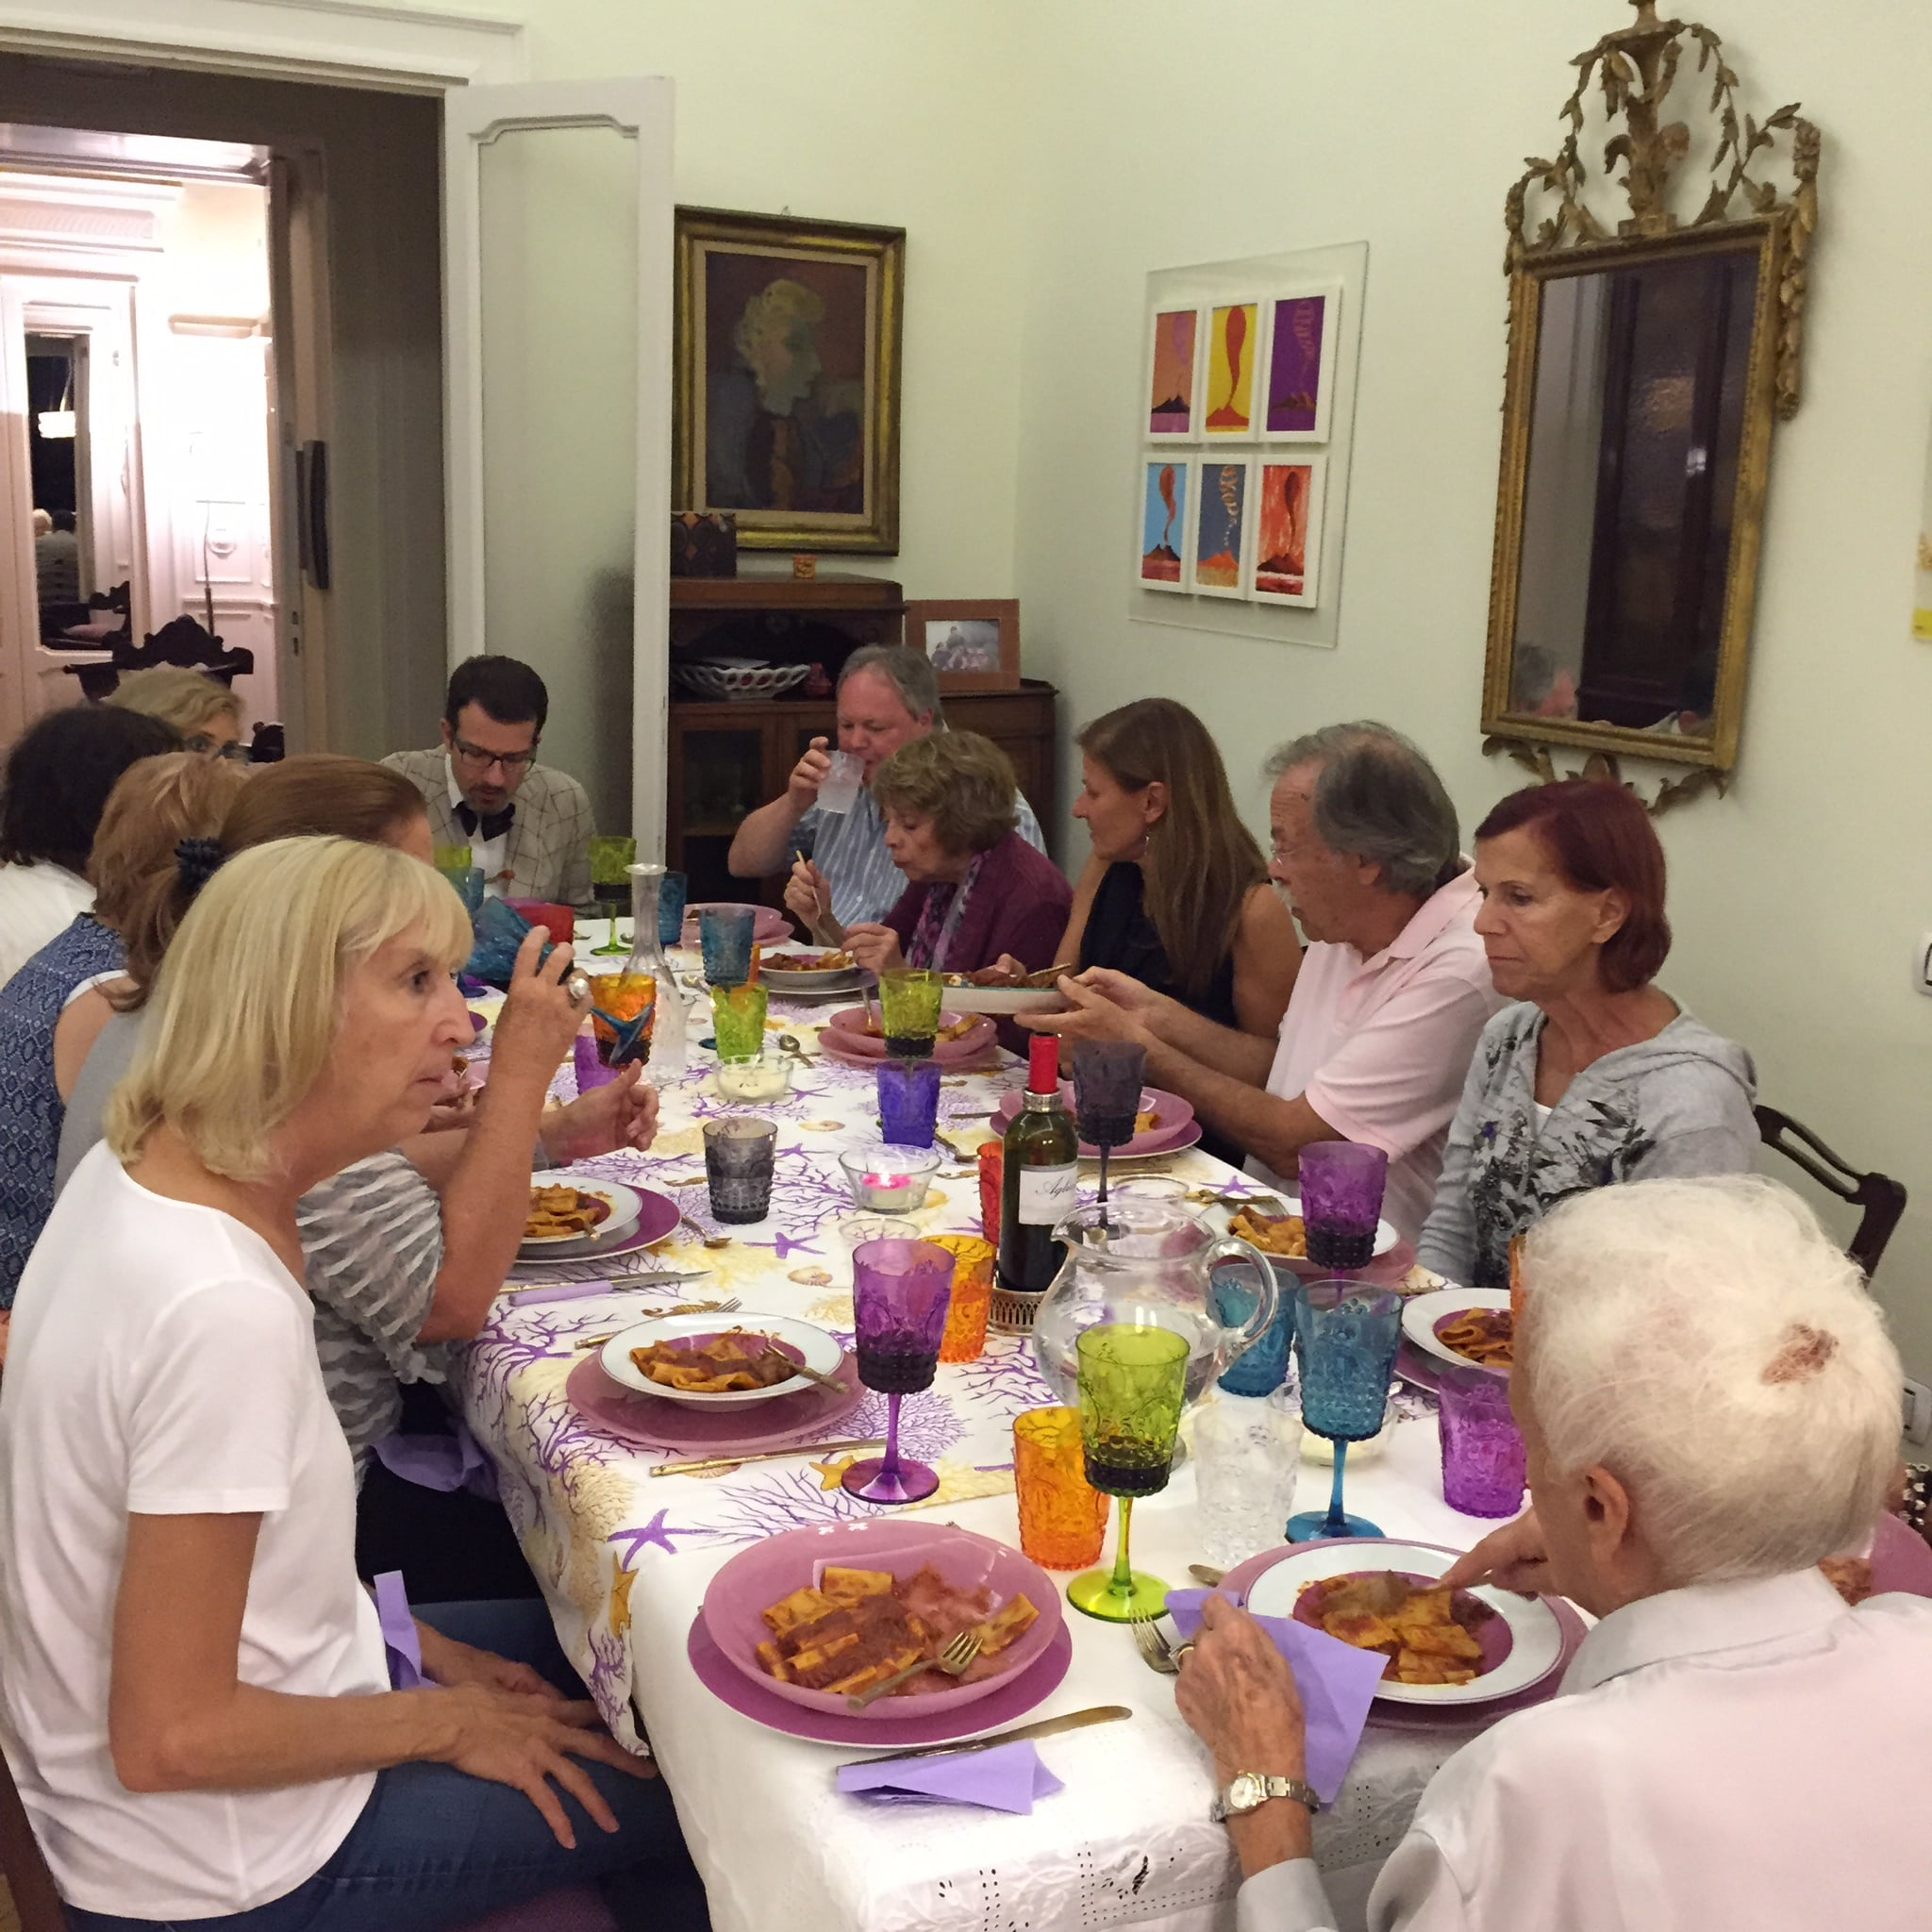 PHOTO TAKEN DURING A TRAVEL ITALIAN STYLE TOUR WHERE WE ENJOYED AN AUTHENTIC MEAL IN AN ITALIAN HOME IN NAPLES!!